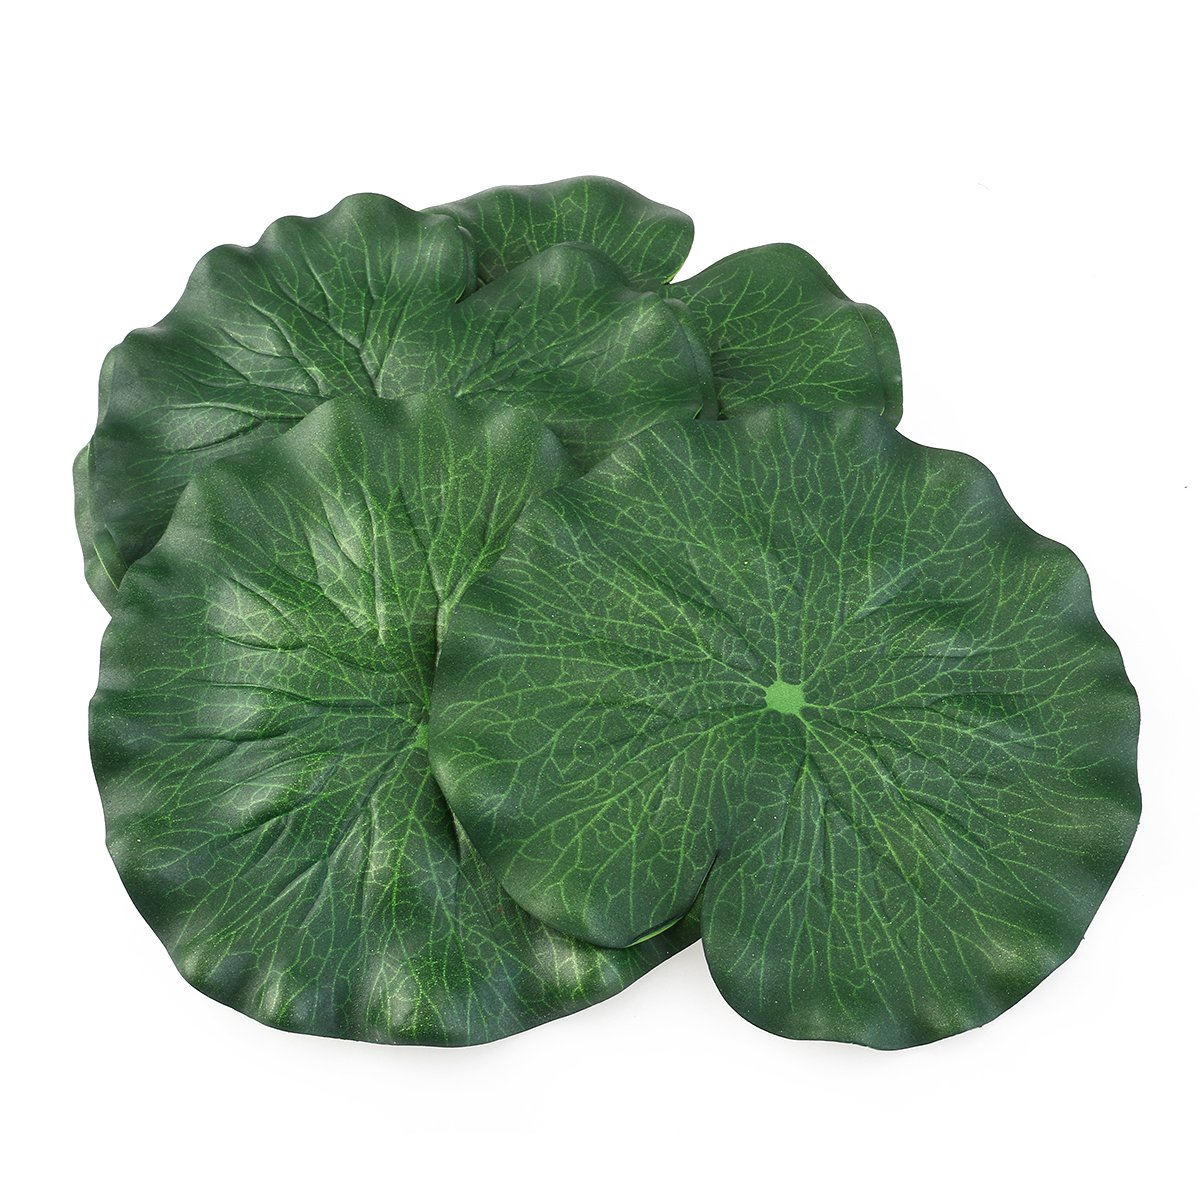 18CM Artificial Floating Foam Lotus Leaves Artificial Foliage Pond Decoration Pack of 10 OULII